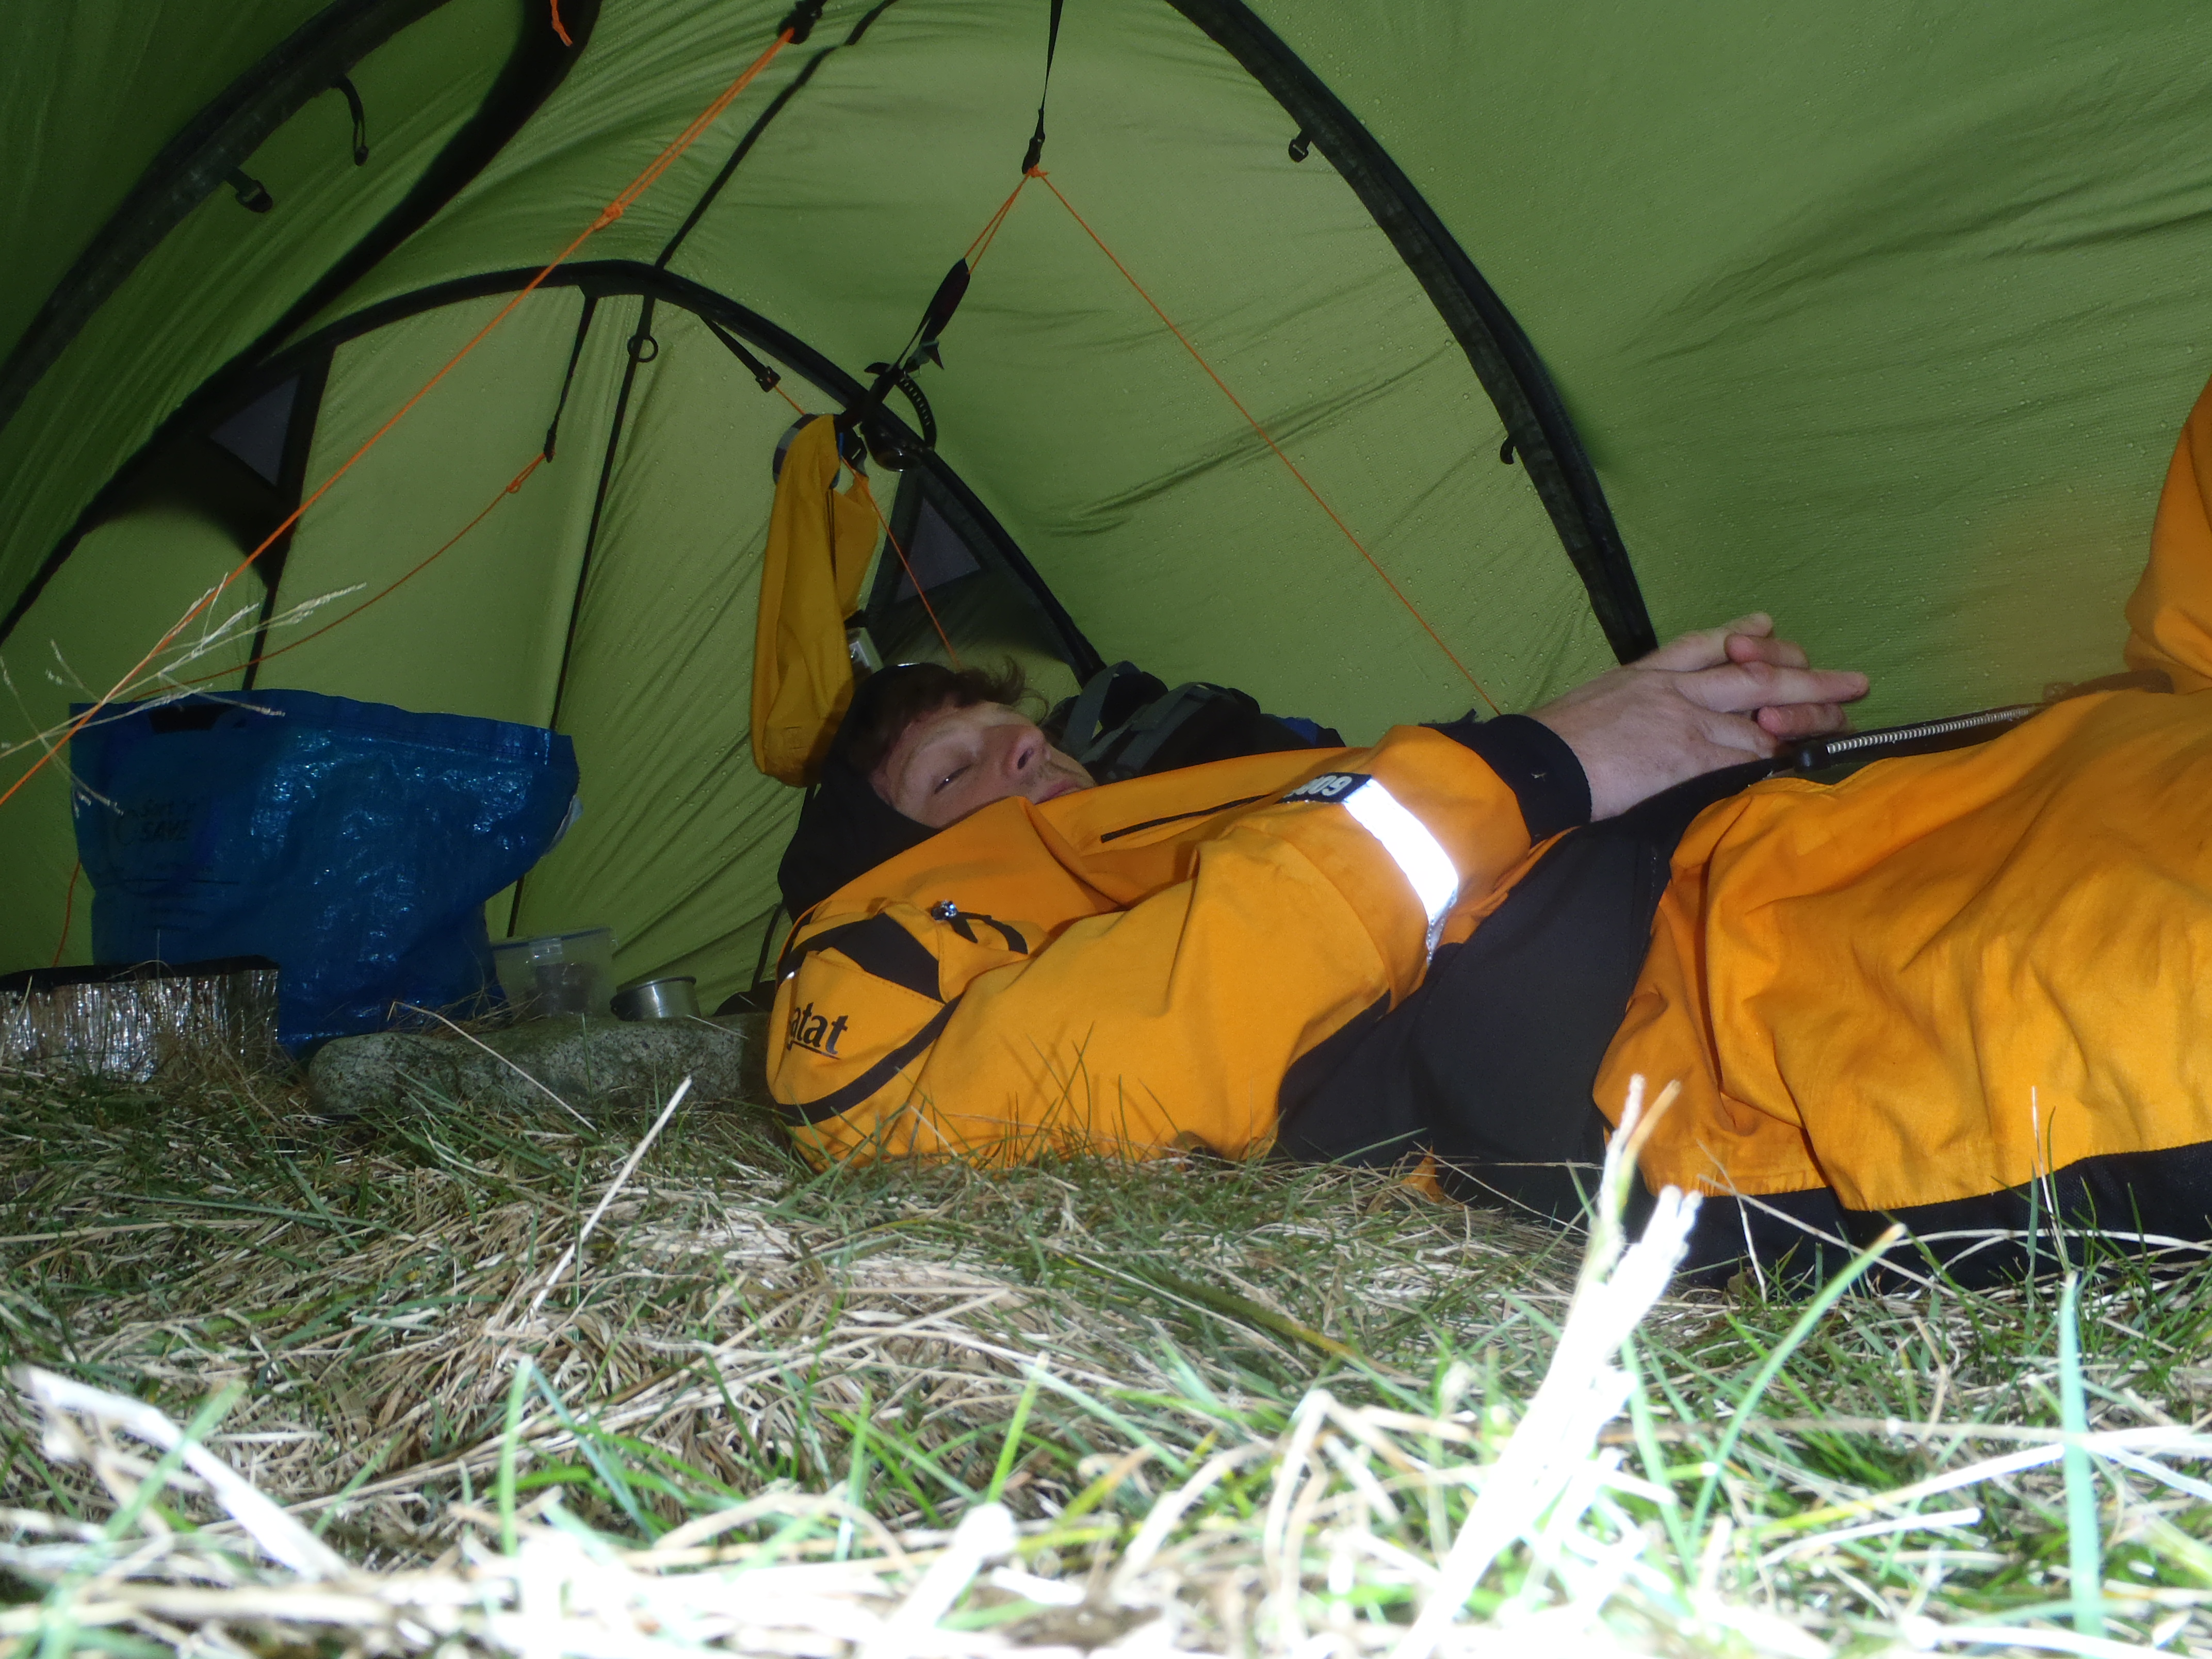 Hiding in a tent